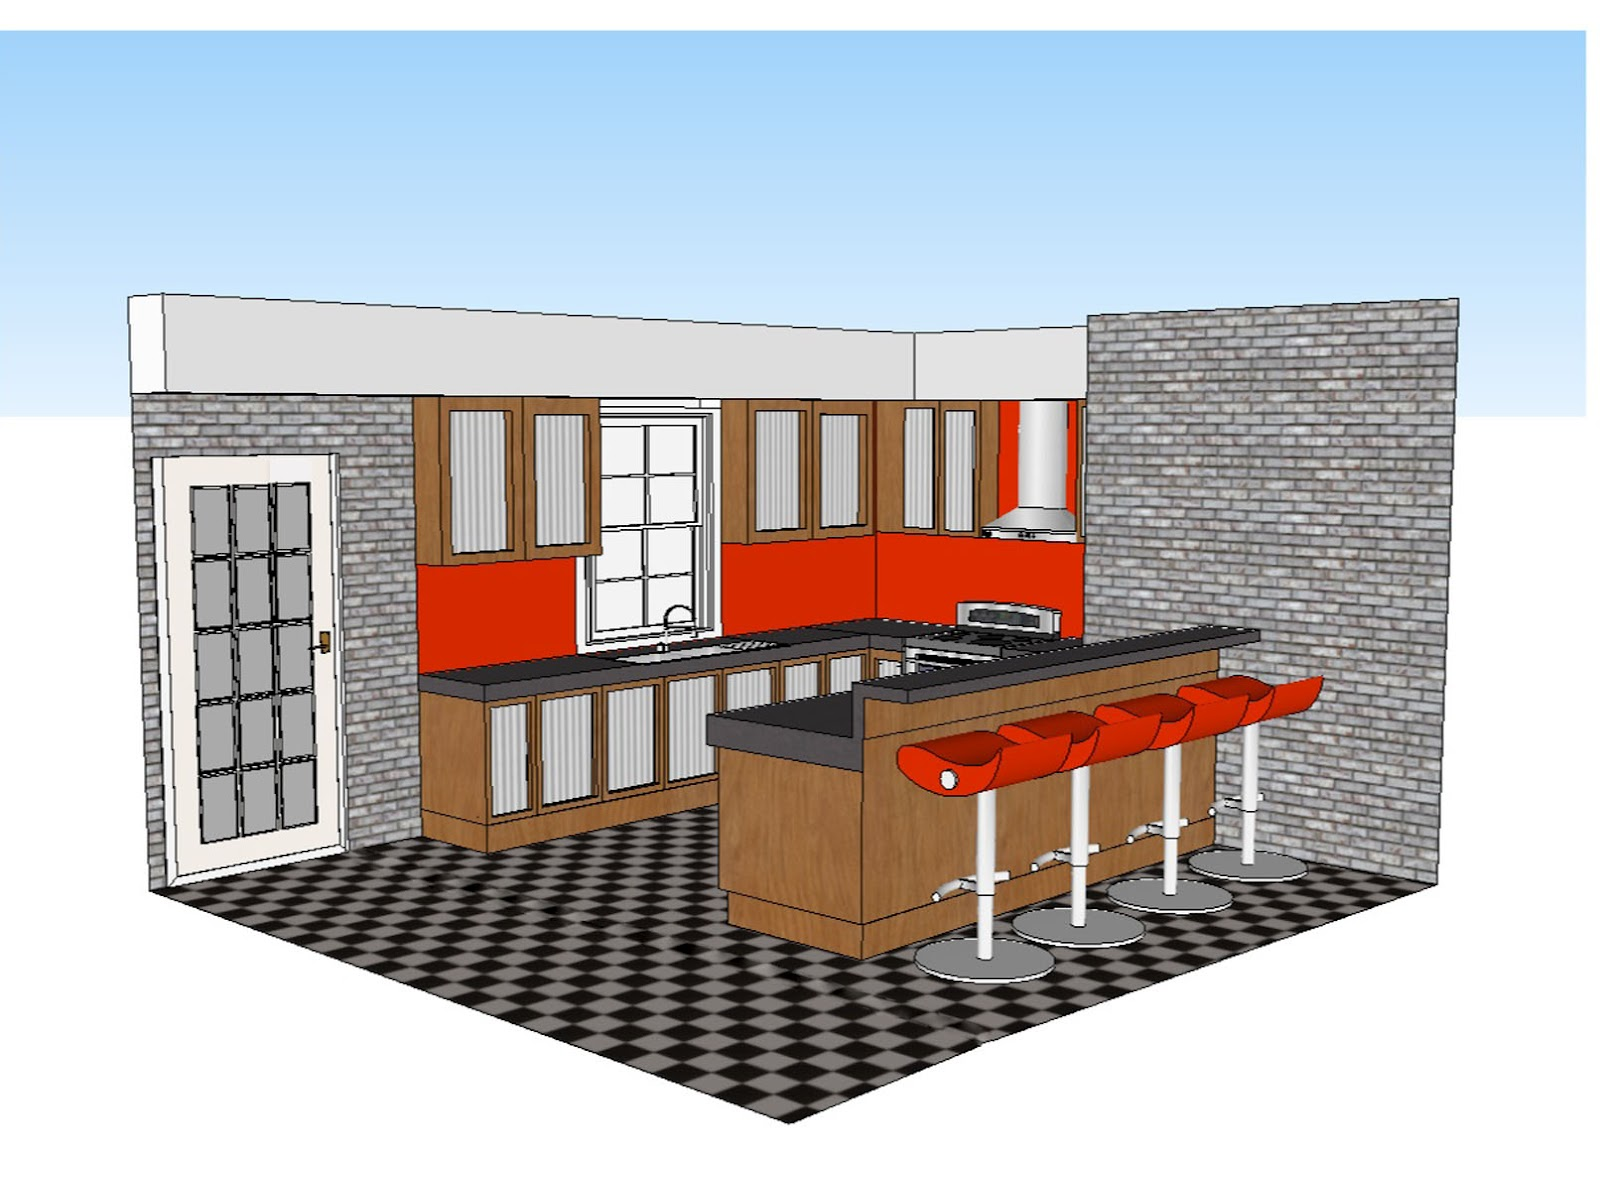 Kitchen Design Software B Andq Google Sketchup Electrical Schematic Google Free Engine